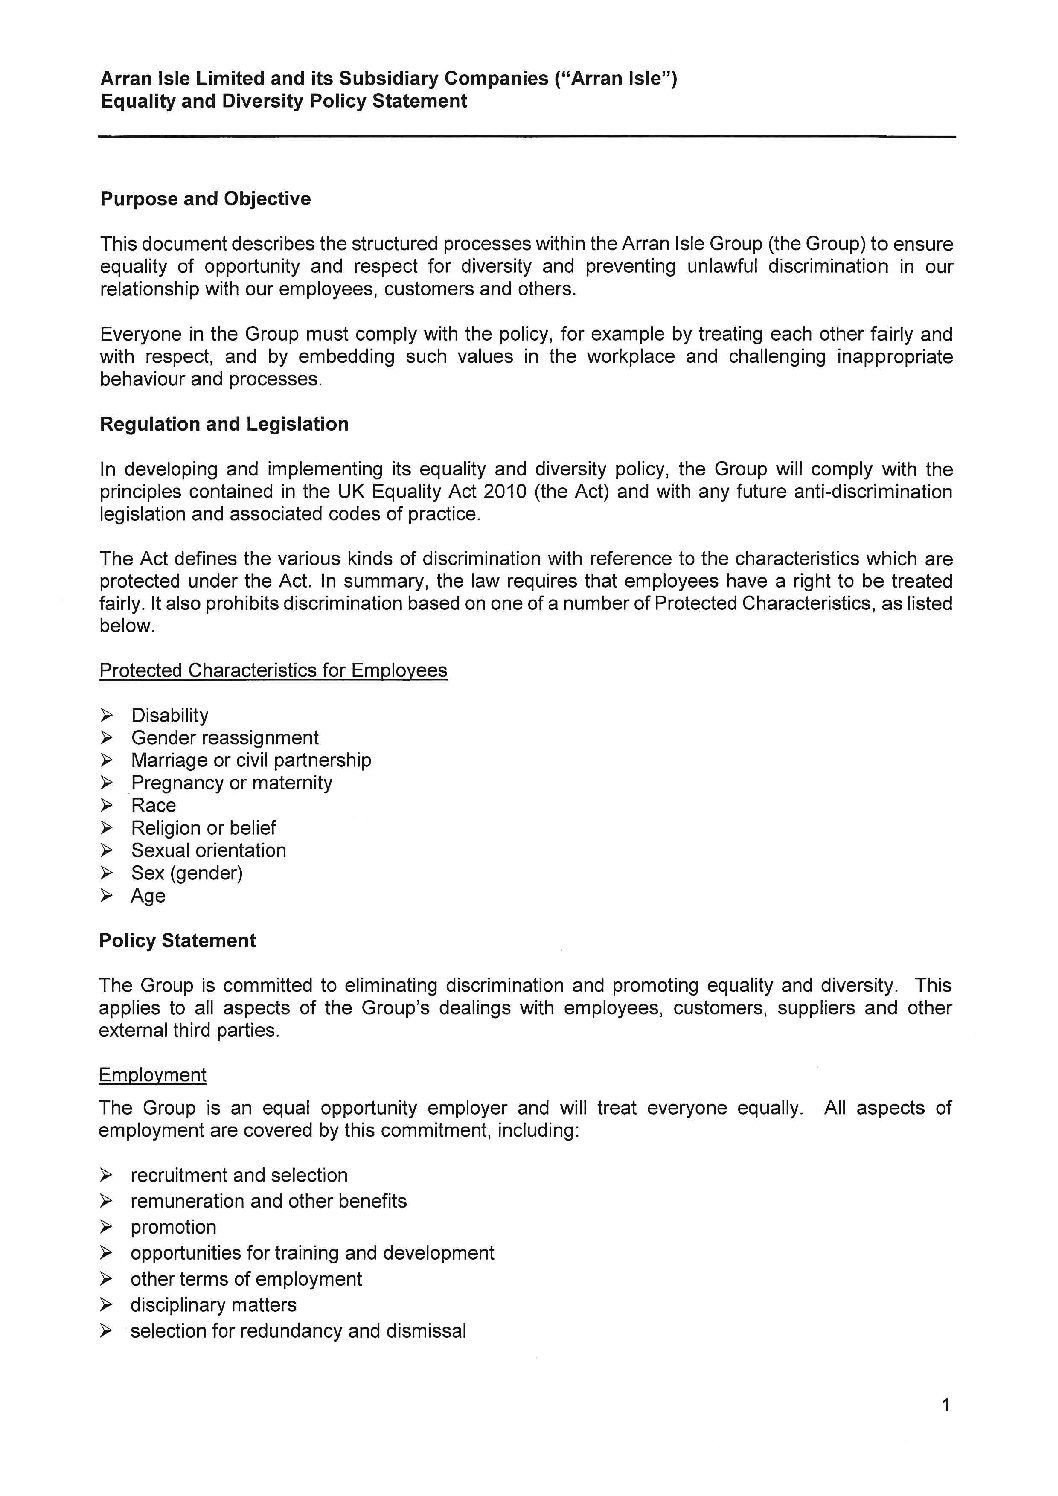 Equality and Diversity Policy Statement - January 2018 - Mila